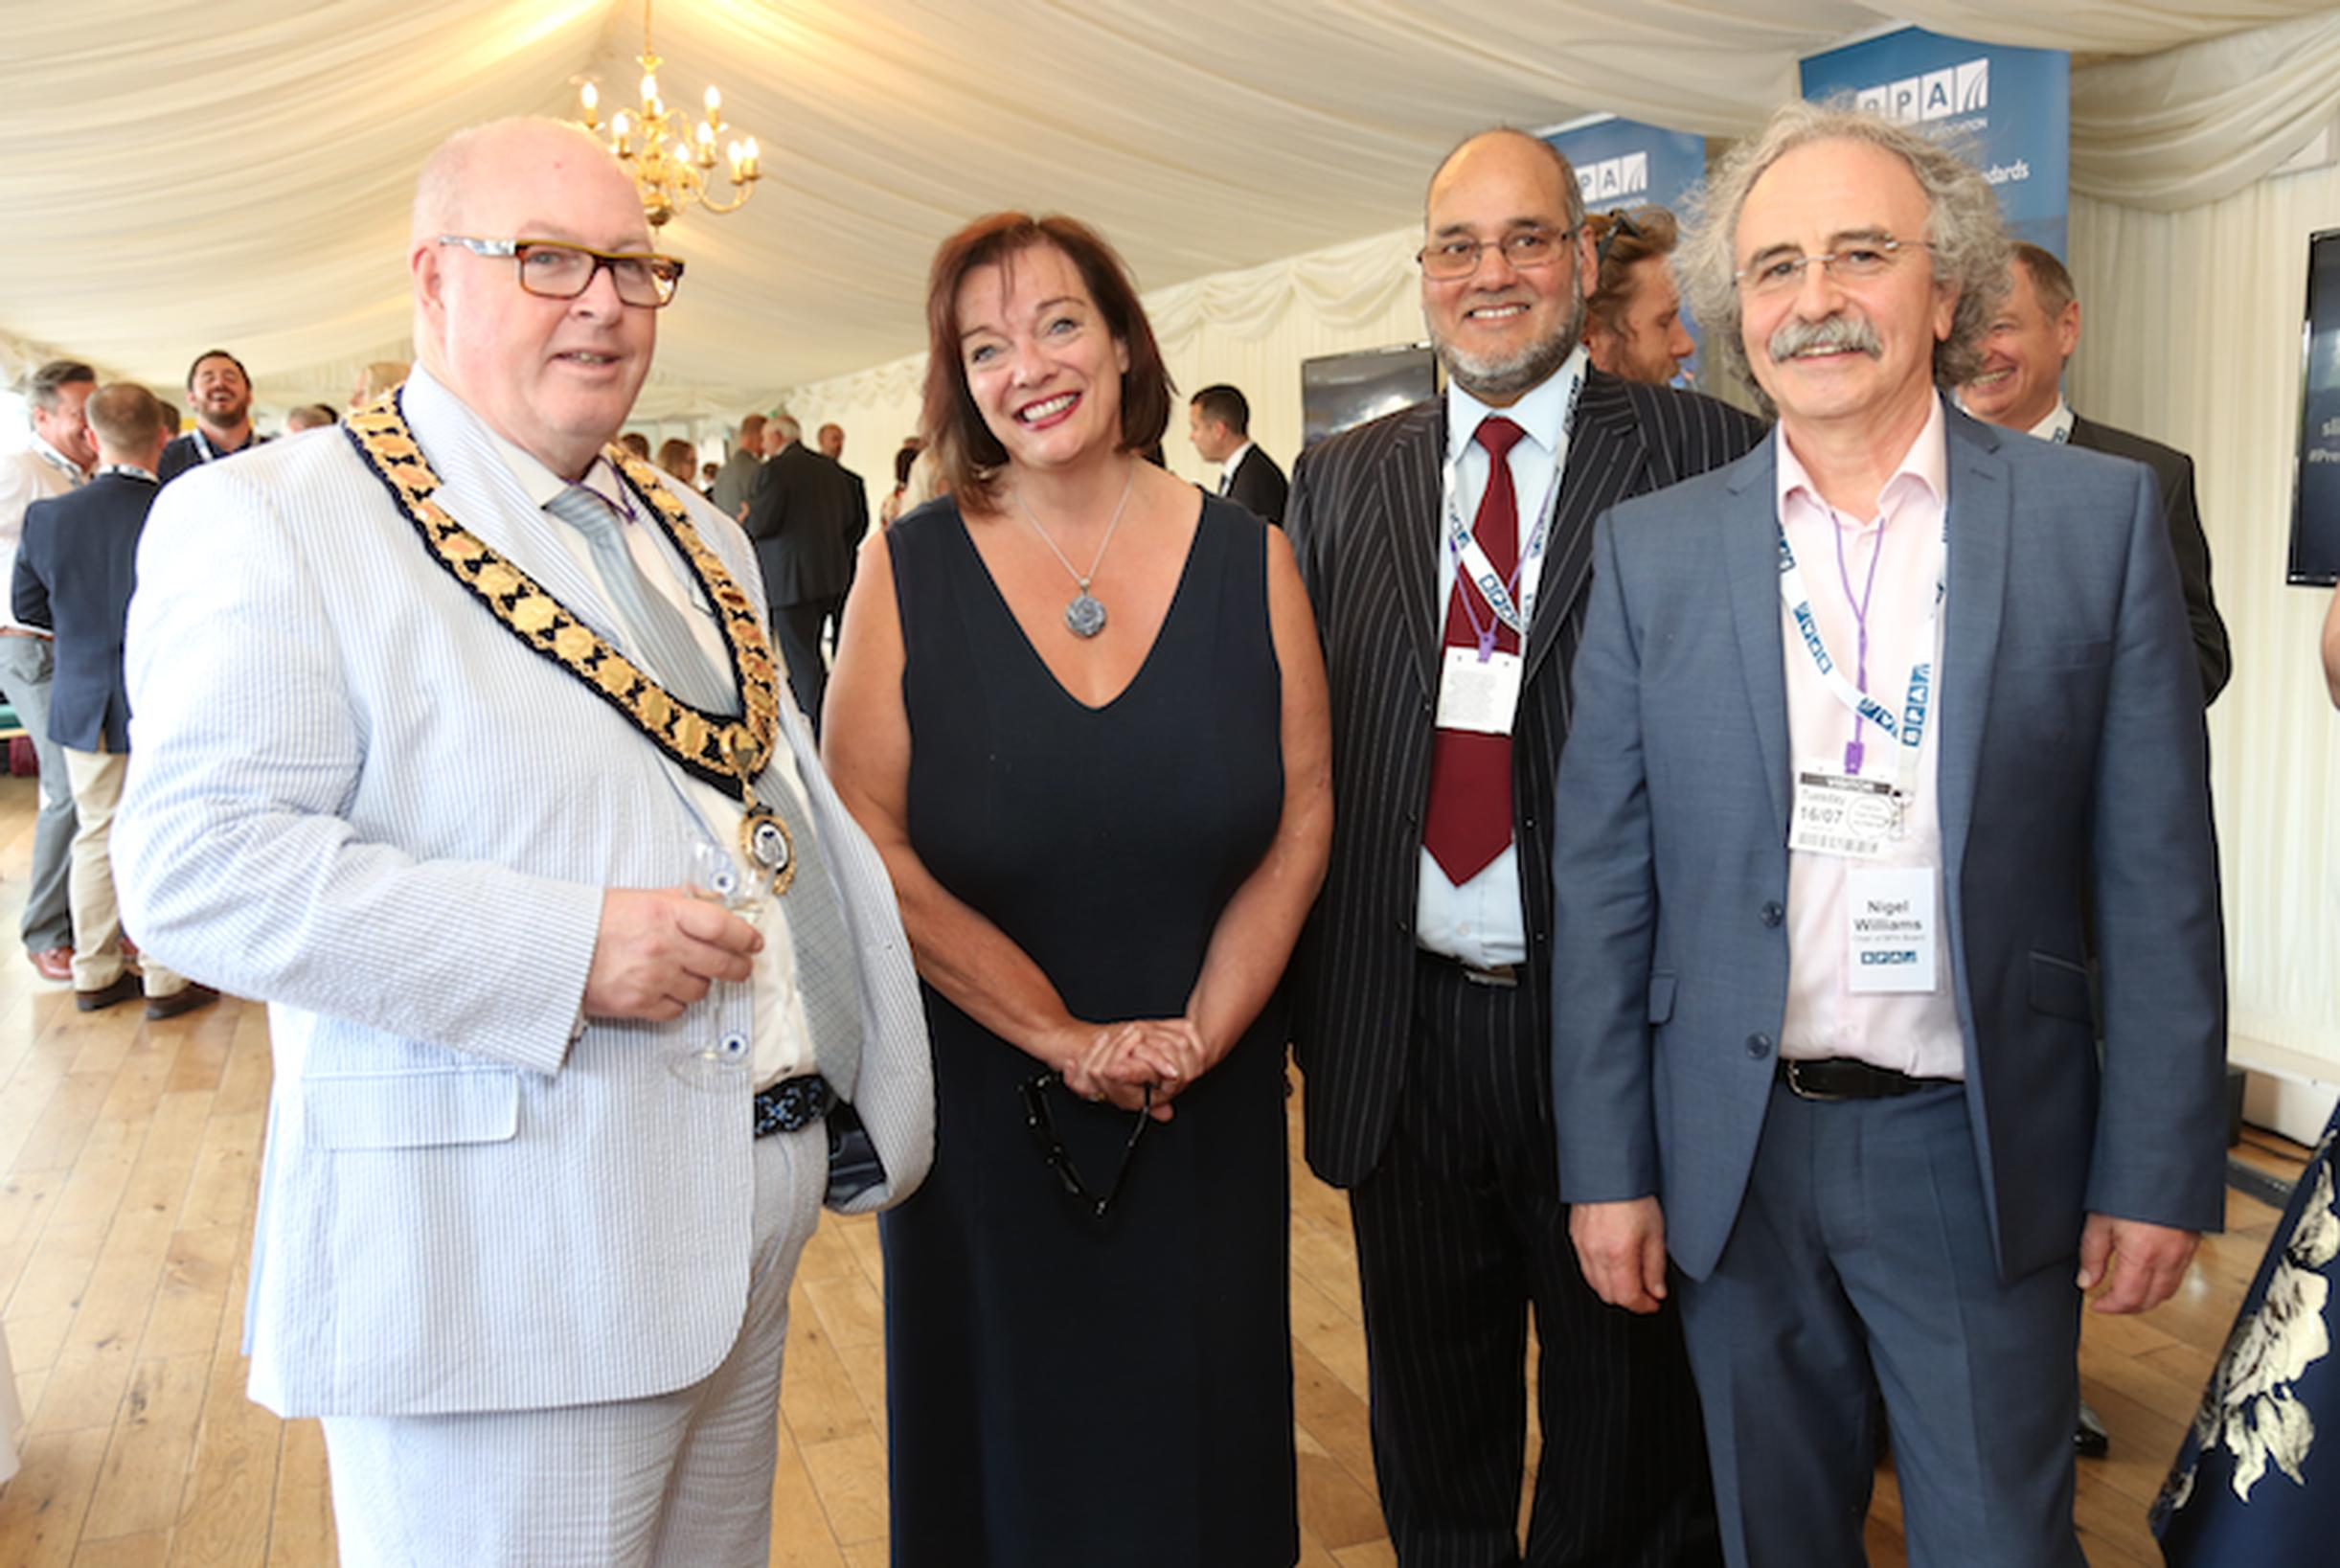 BPA president John McArdle, Lyn Brown MP, BPA past-president Zulfi Ali and BPA board chair Nigel Williams